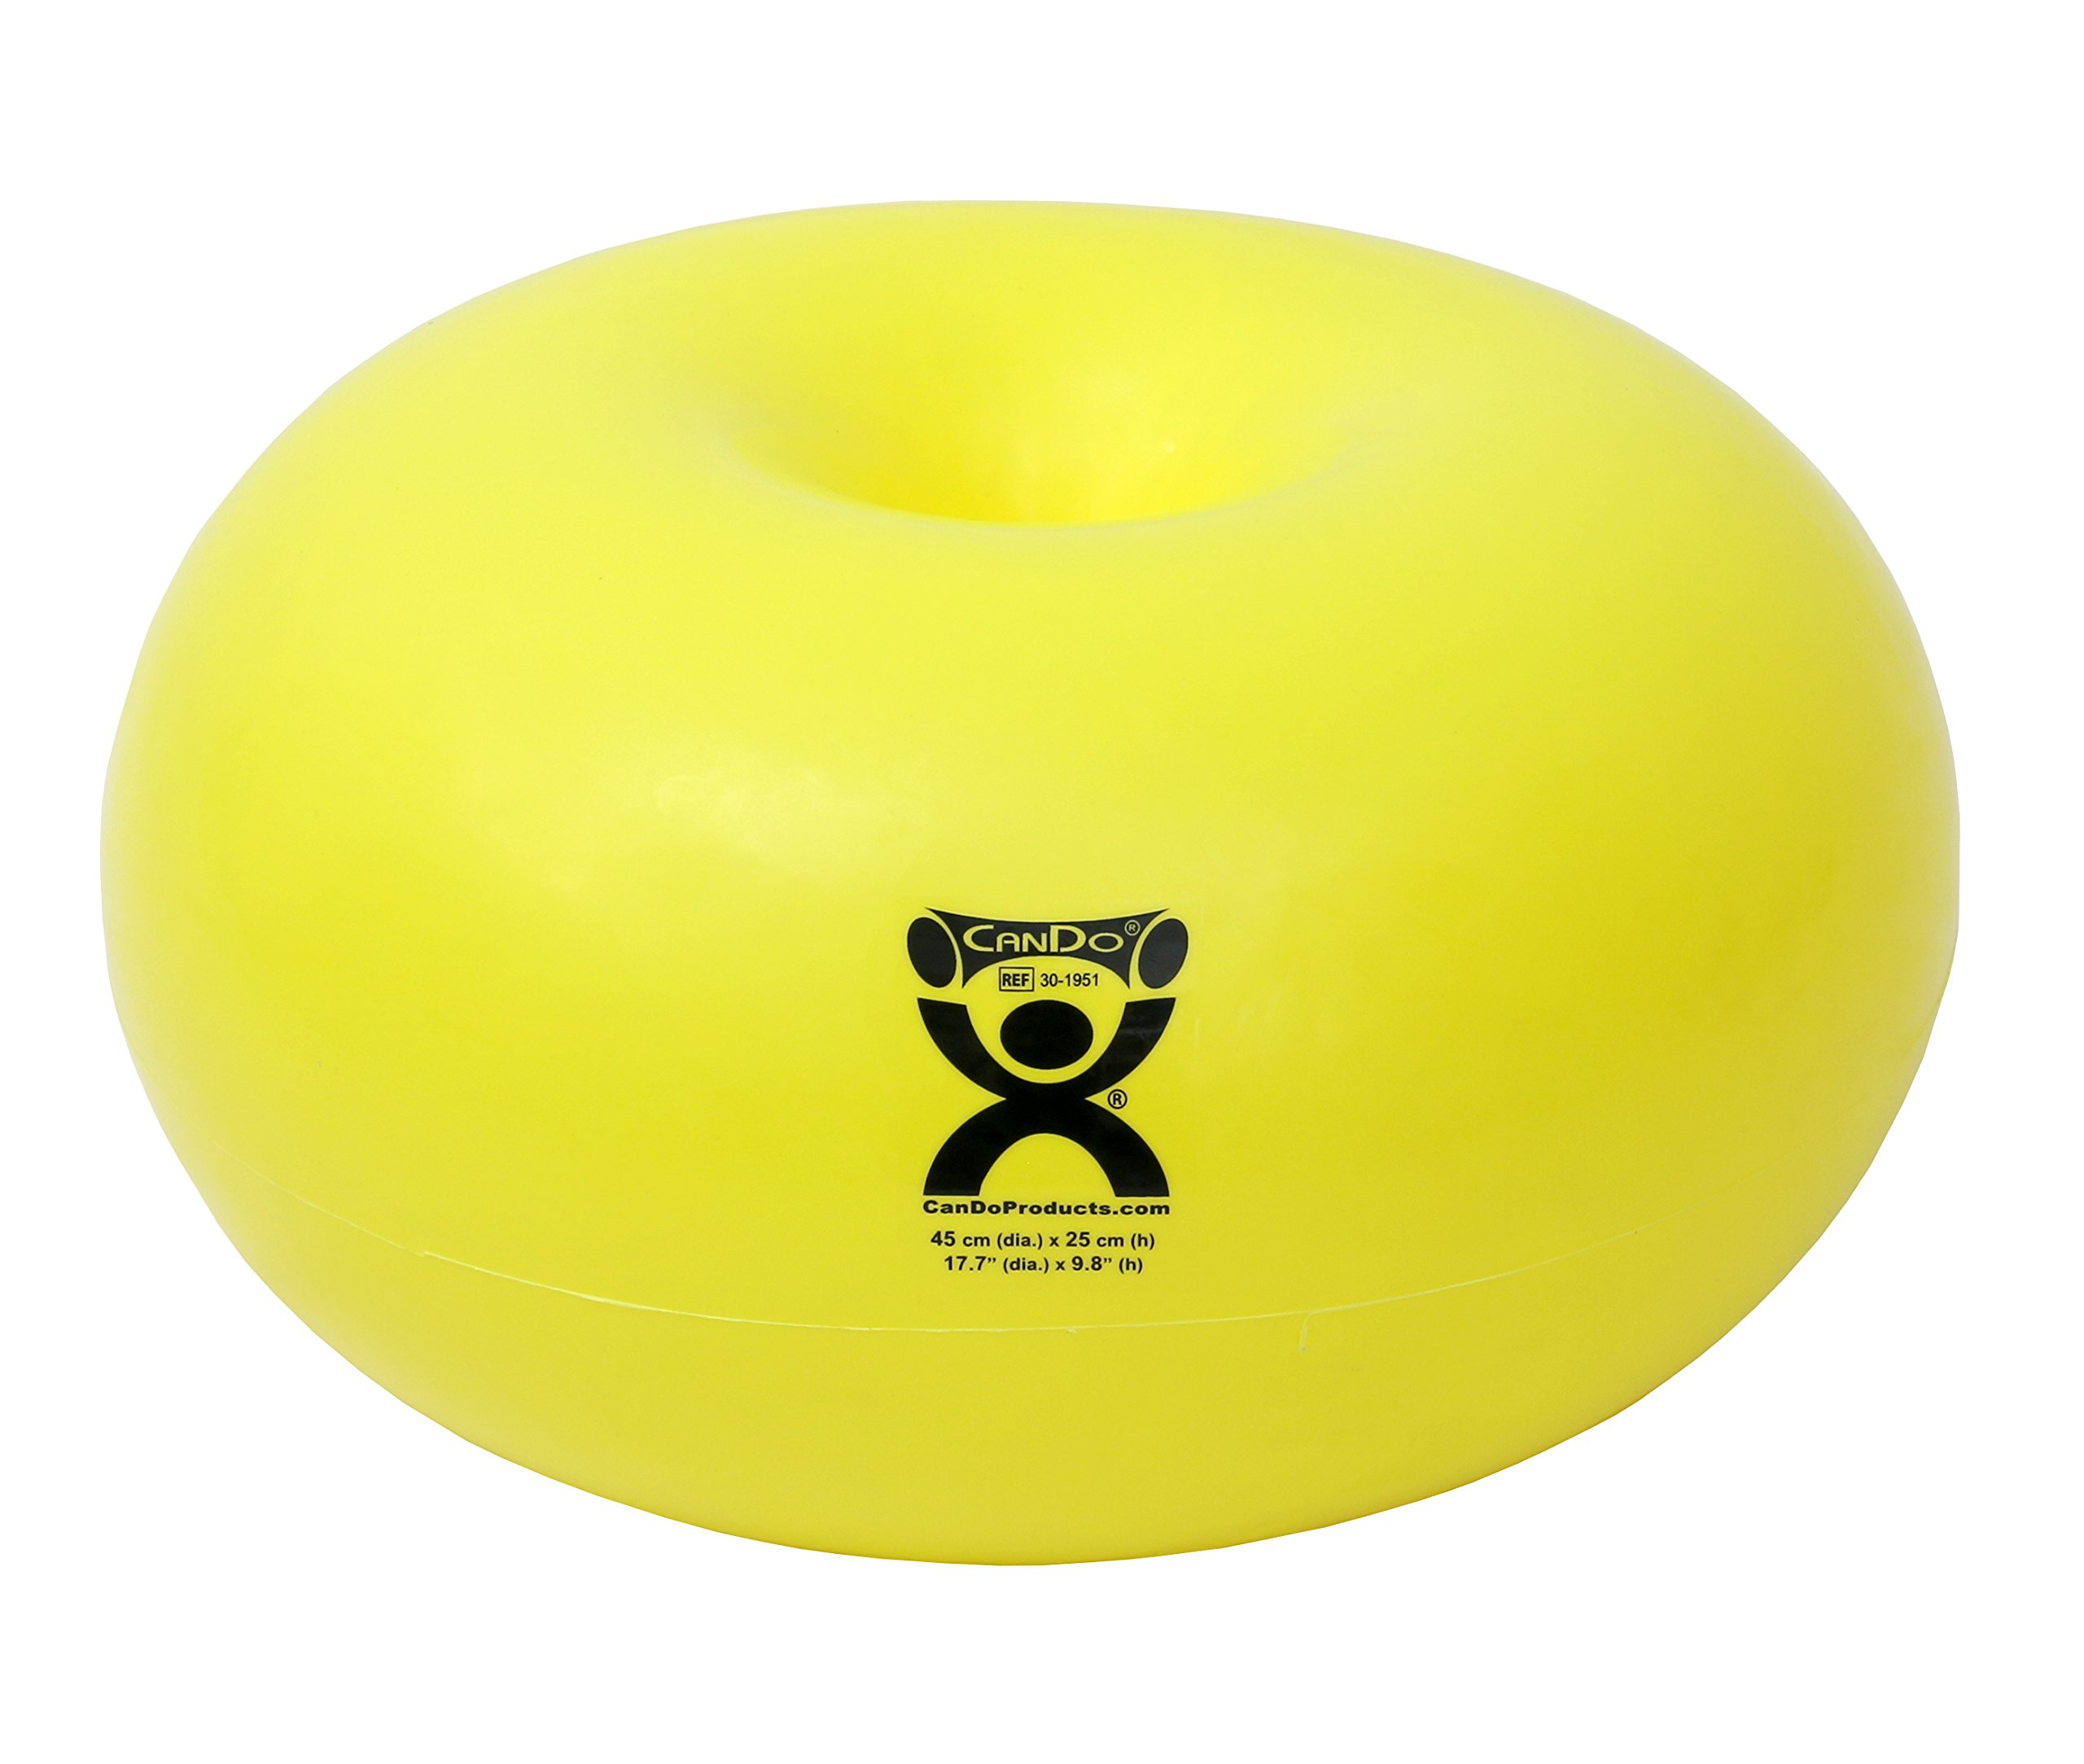 CanDo Donut Exercise, Workout, Core Training, Swiss Stability Ball for Yoga, Pilates and Balance Training in Gym, Office or Classroom